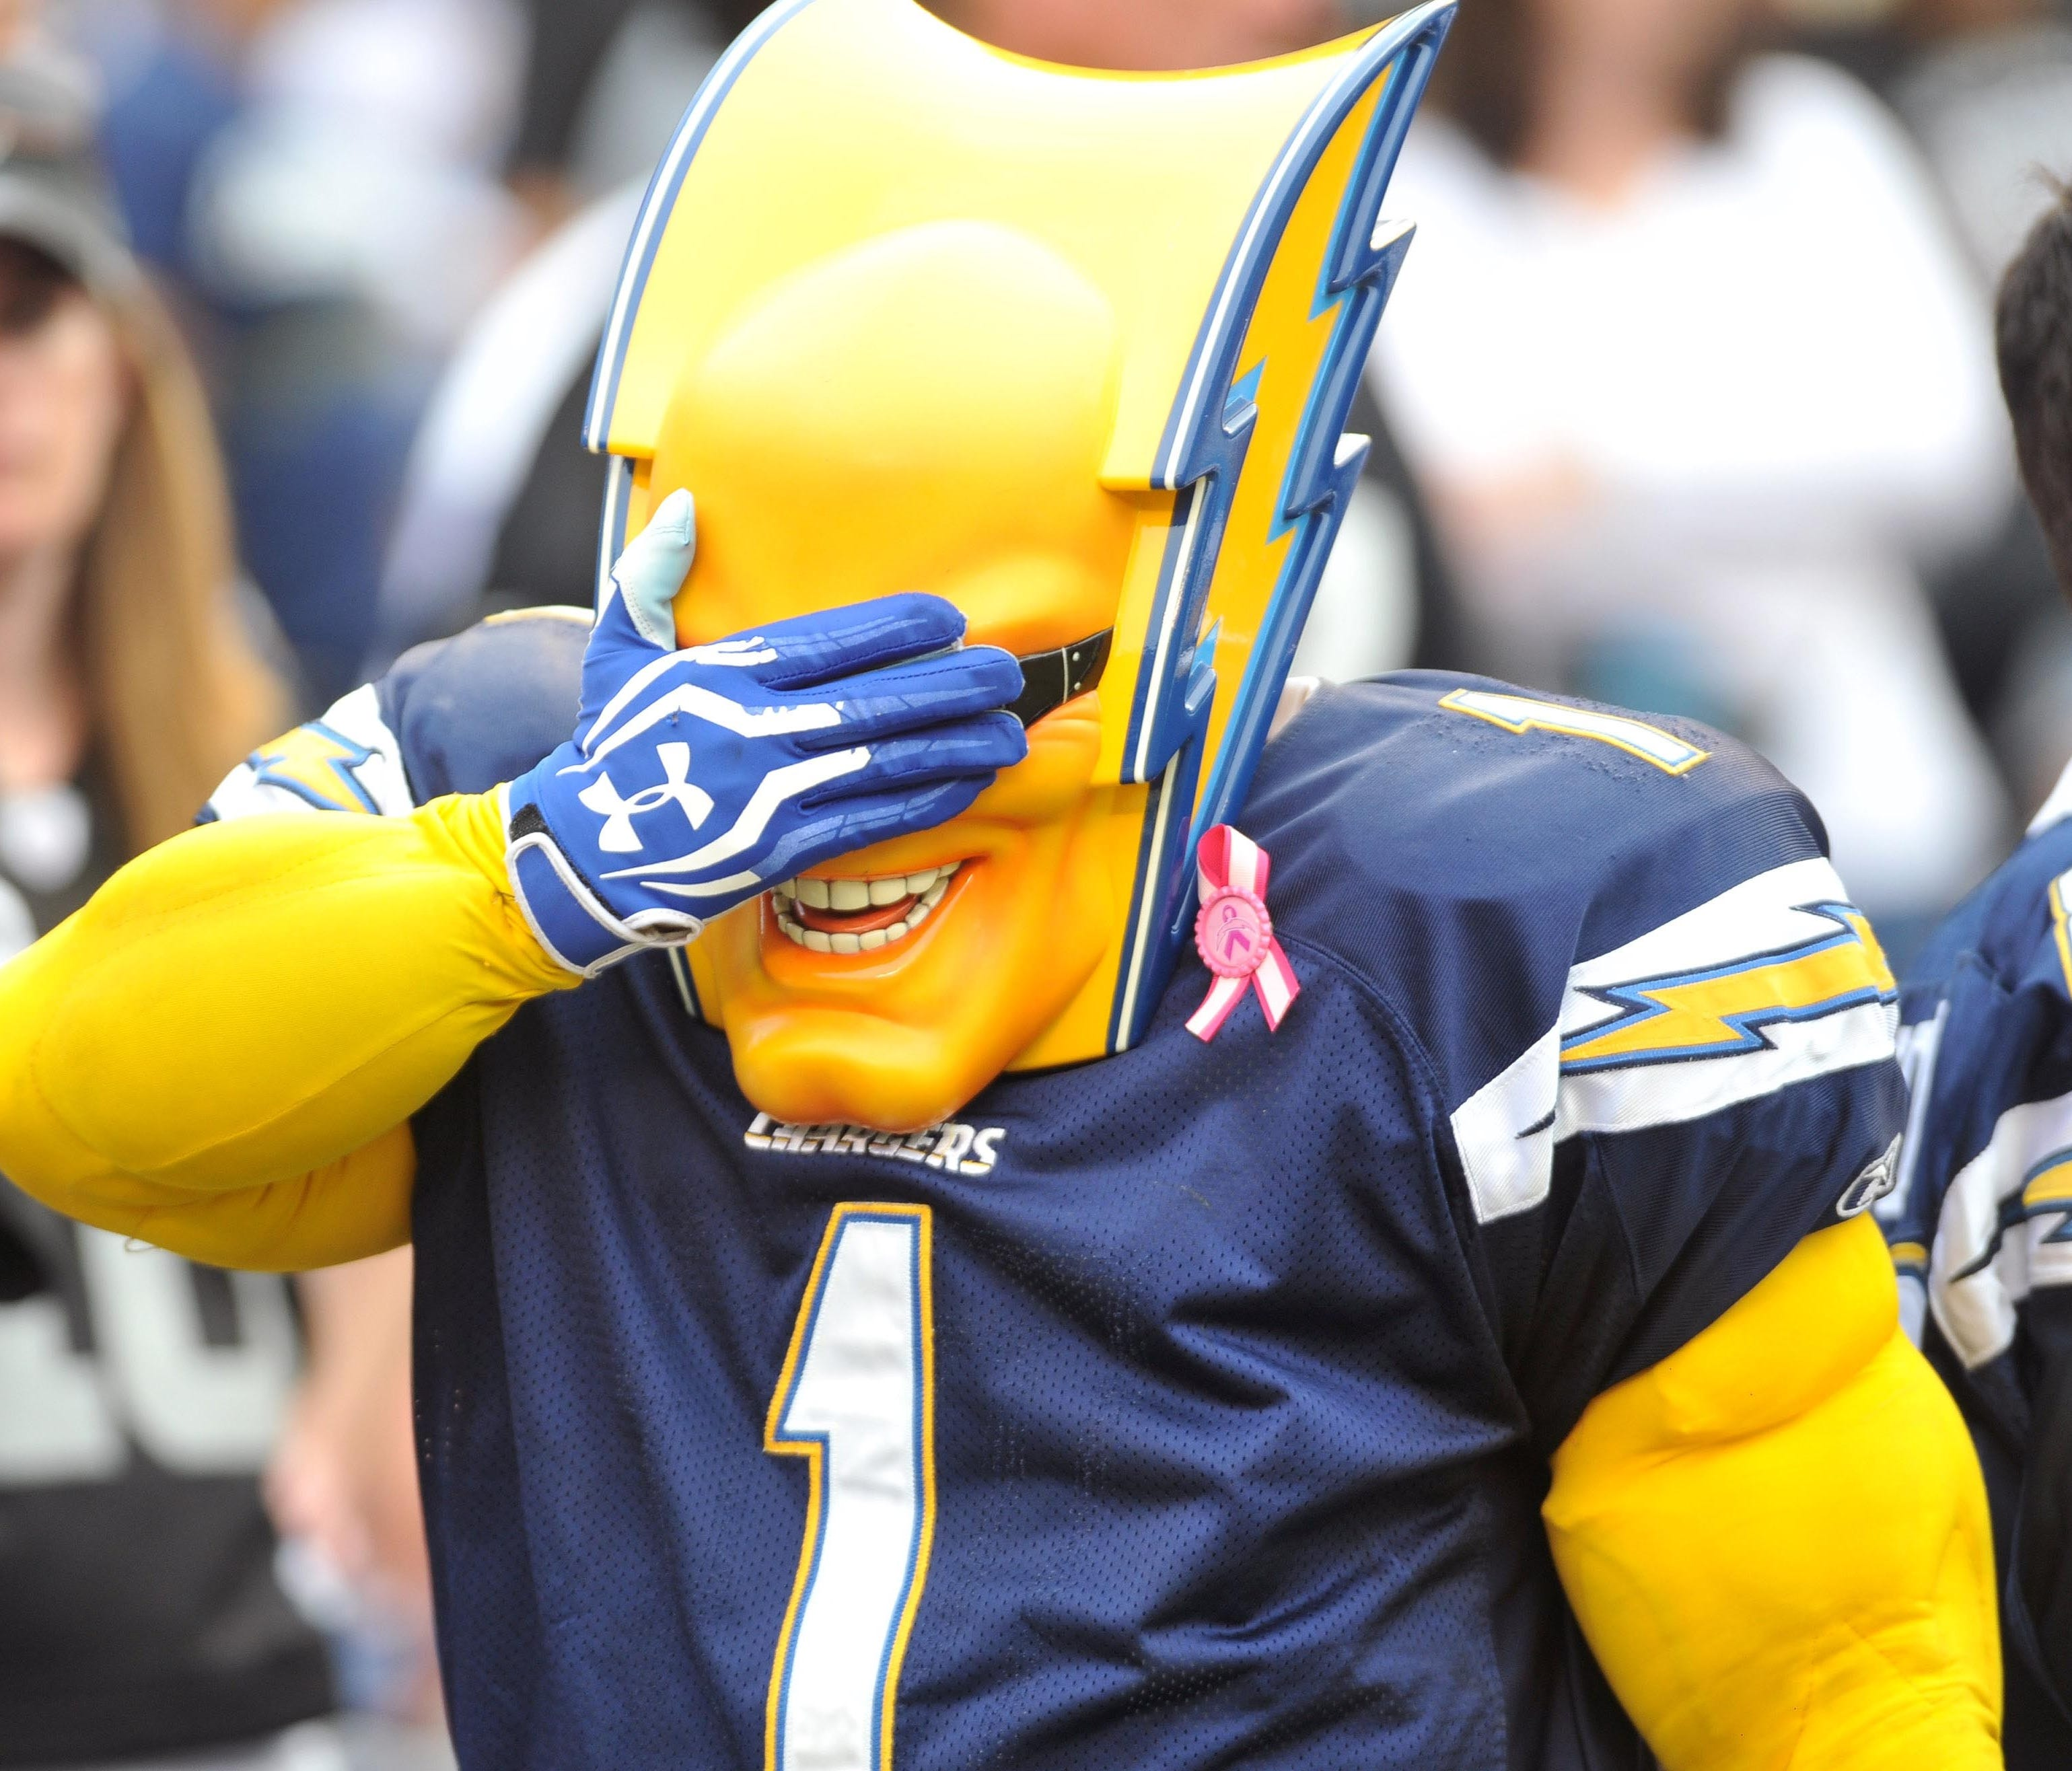 Chargers Rams Raiders All File To Relocate To Los Angeles Wbir Com